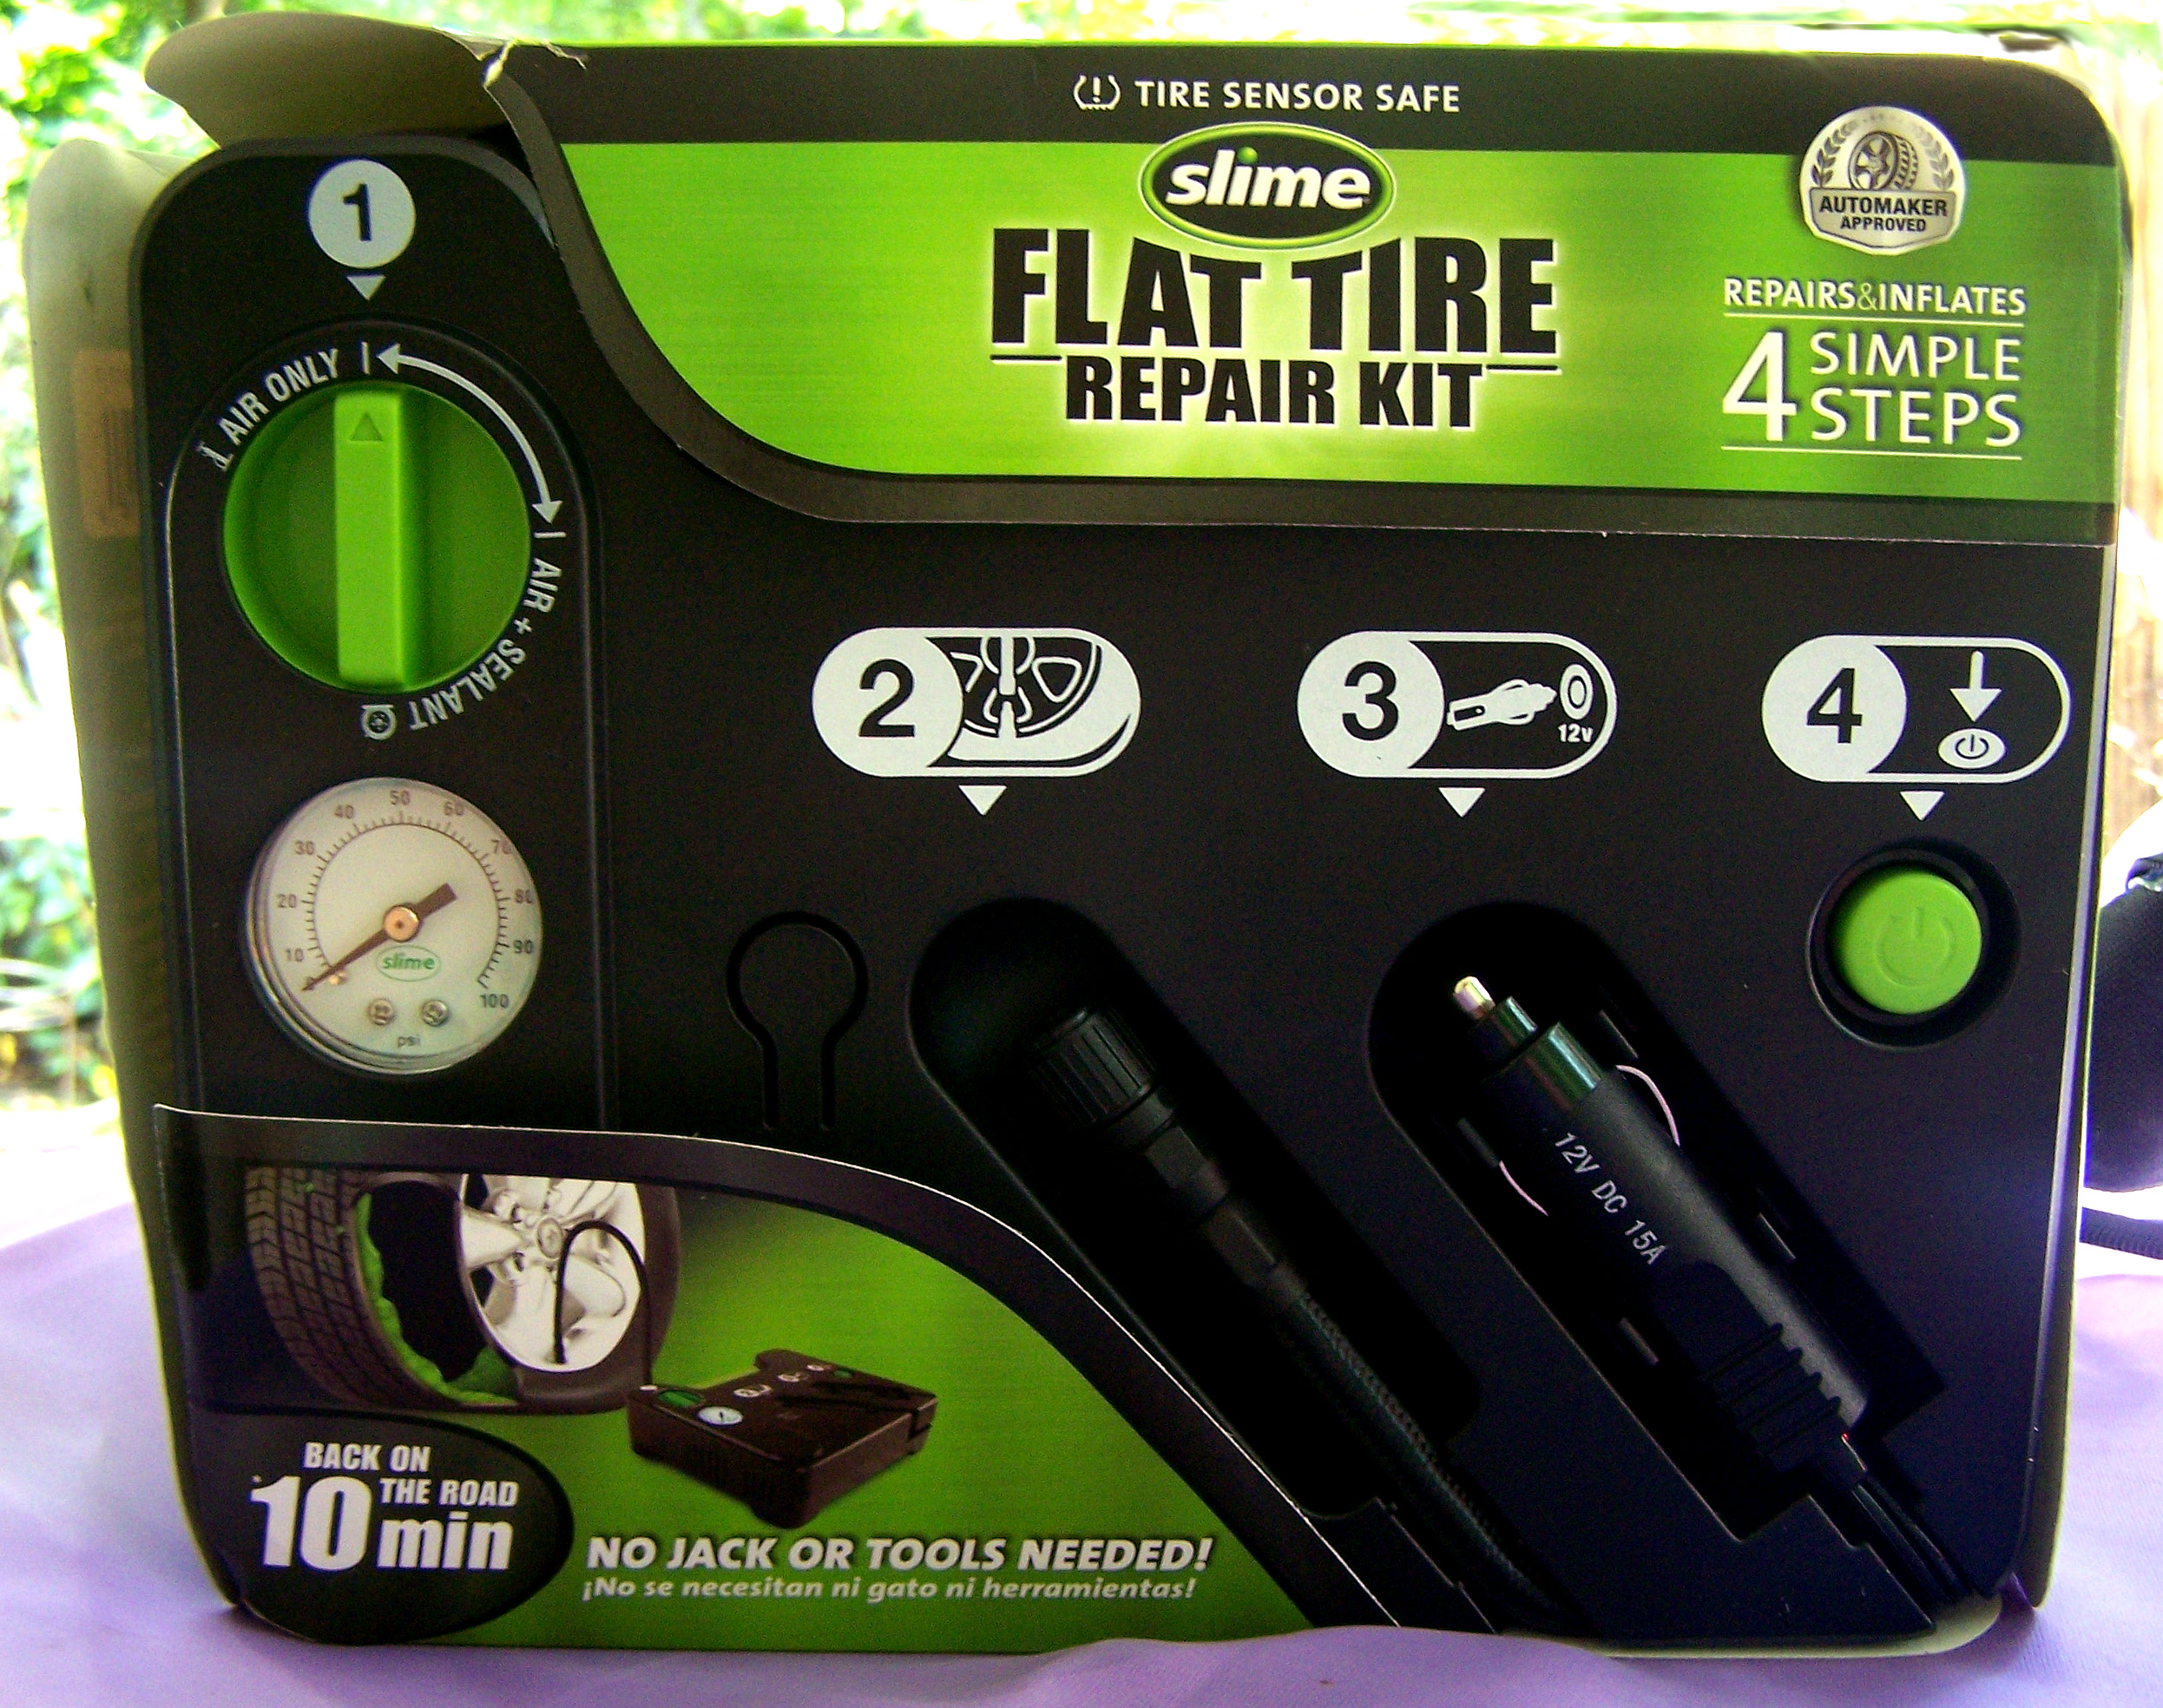 Slime flat tire repair kit giveaway win sweepstakes safety car cars car repair flat tire fix air digital edition high value kids back to school trucks morotcycles teen drivers driving safe gifts gift